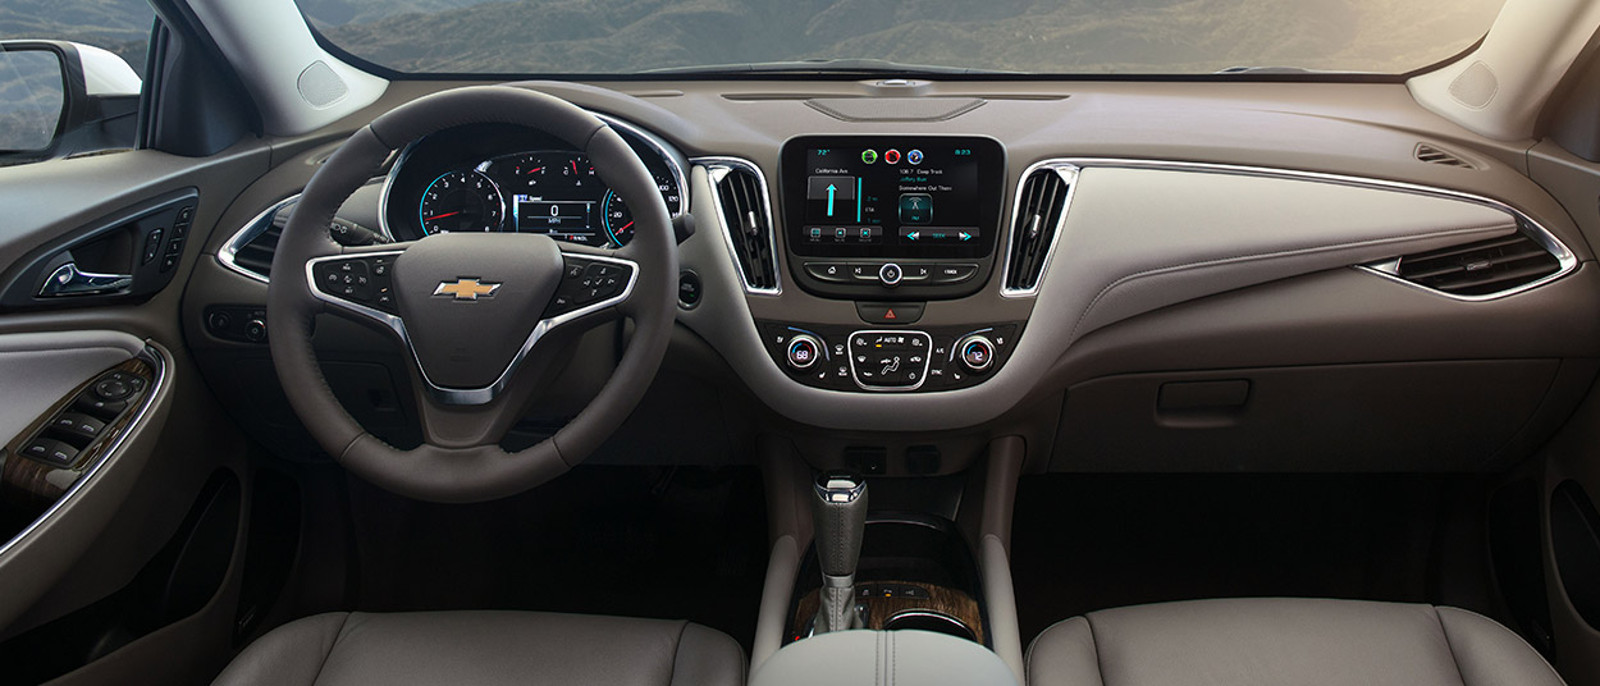 ... 2016 Chevy Malibu Interior ...